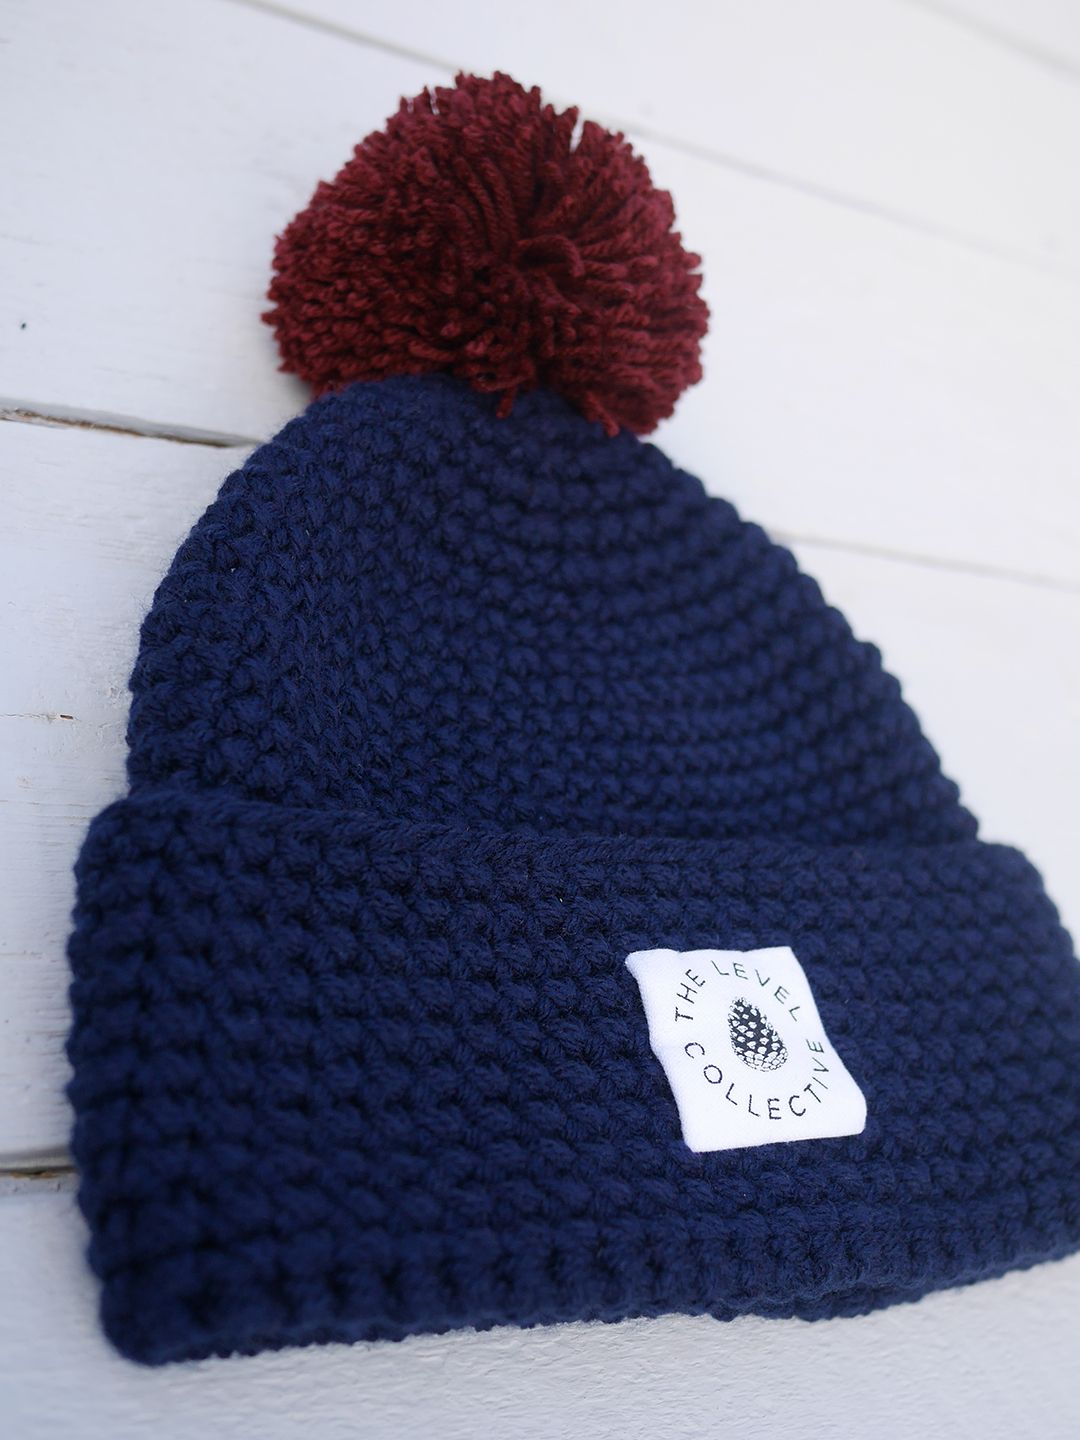 Big Bob Original  Navy   Burgundy Bobble chunky knit beanie hat with bobble  ethically handmade in Romania for The Level Collective ababfca4259